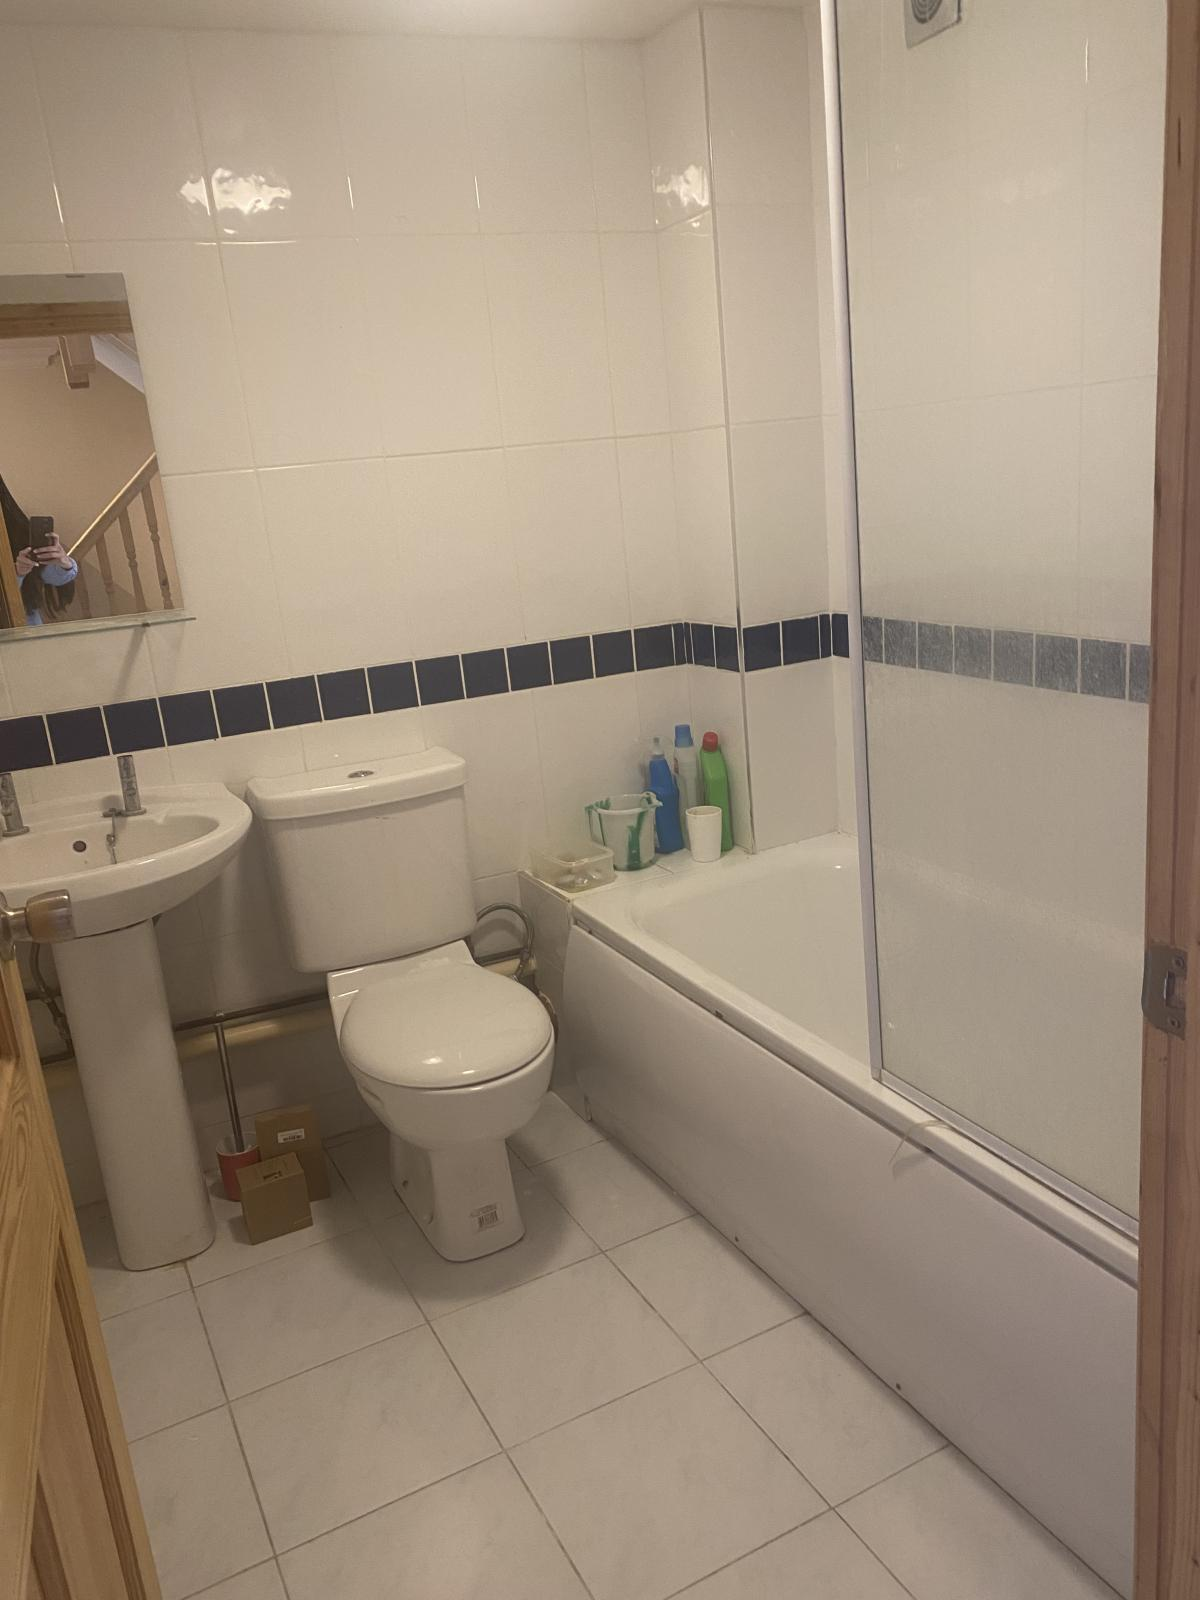 1 bed flat to rent in North End Road, West Kensintgon, London  - Property Image 8